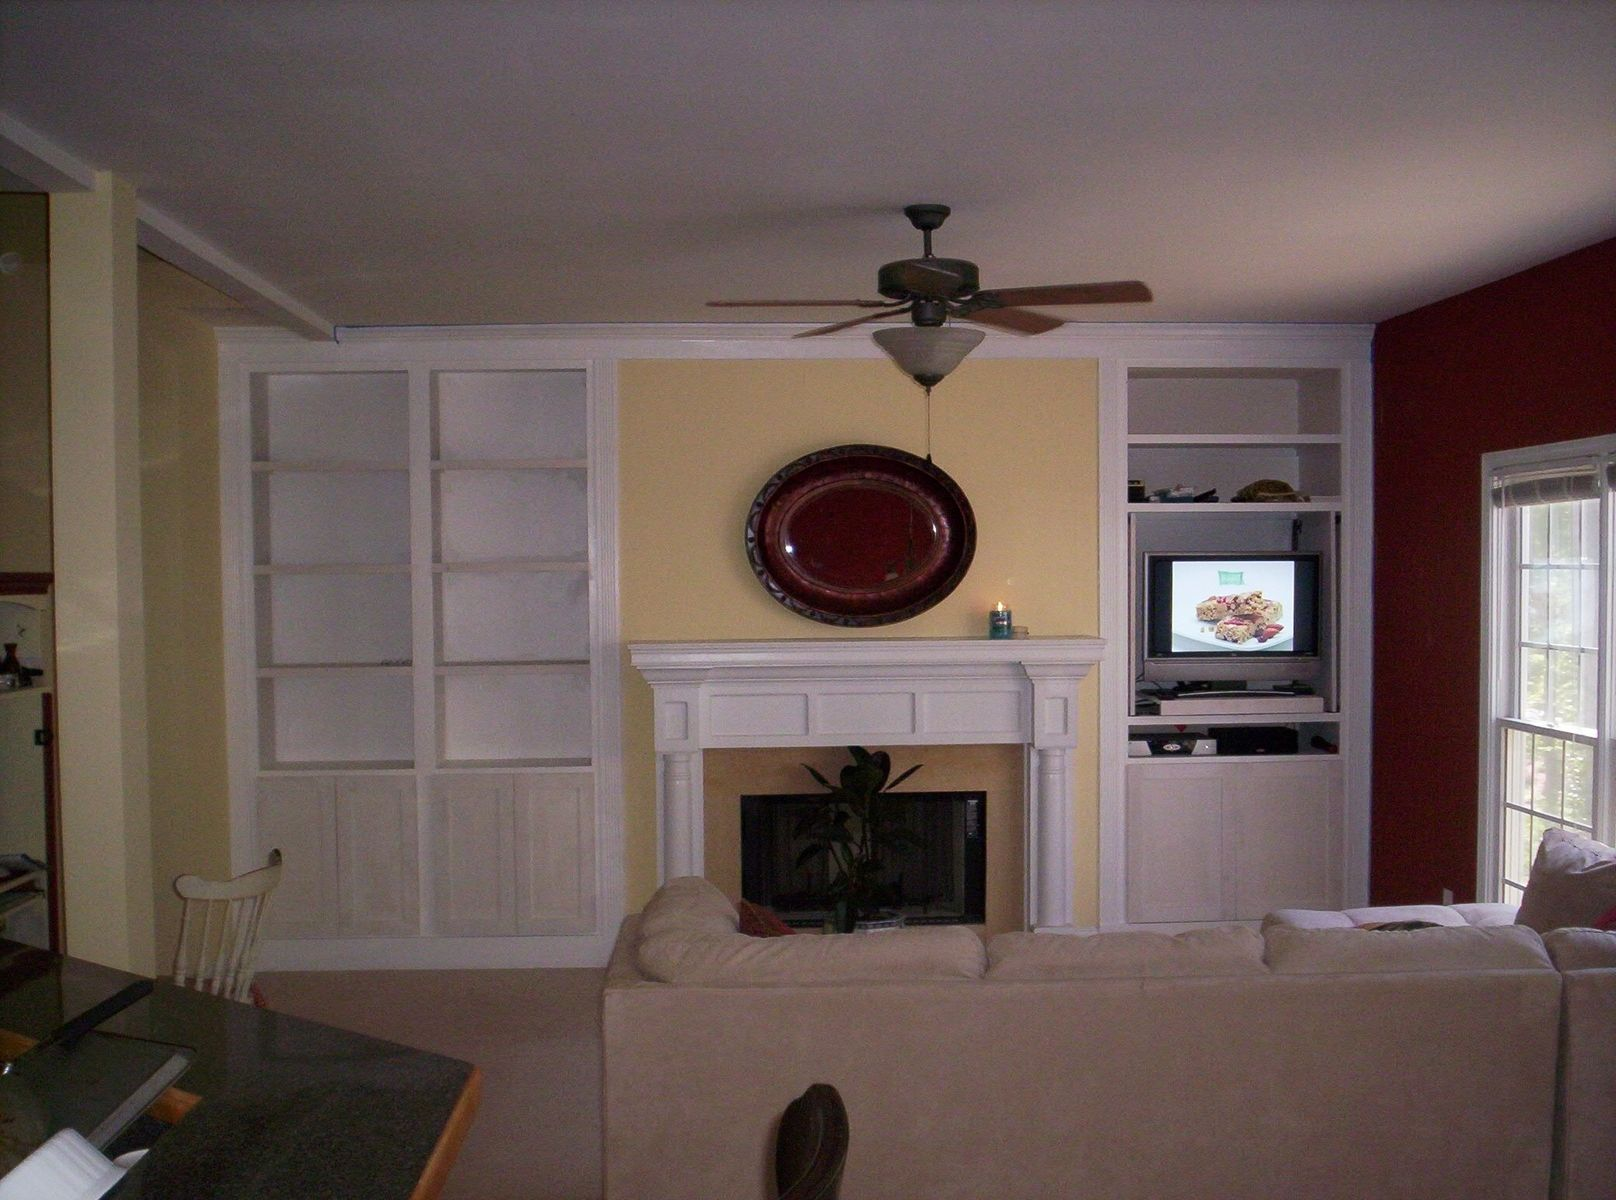 Living Room Built Ins hand crafted living room built-insblue ridge woodworks of